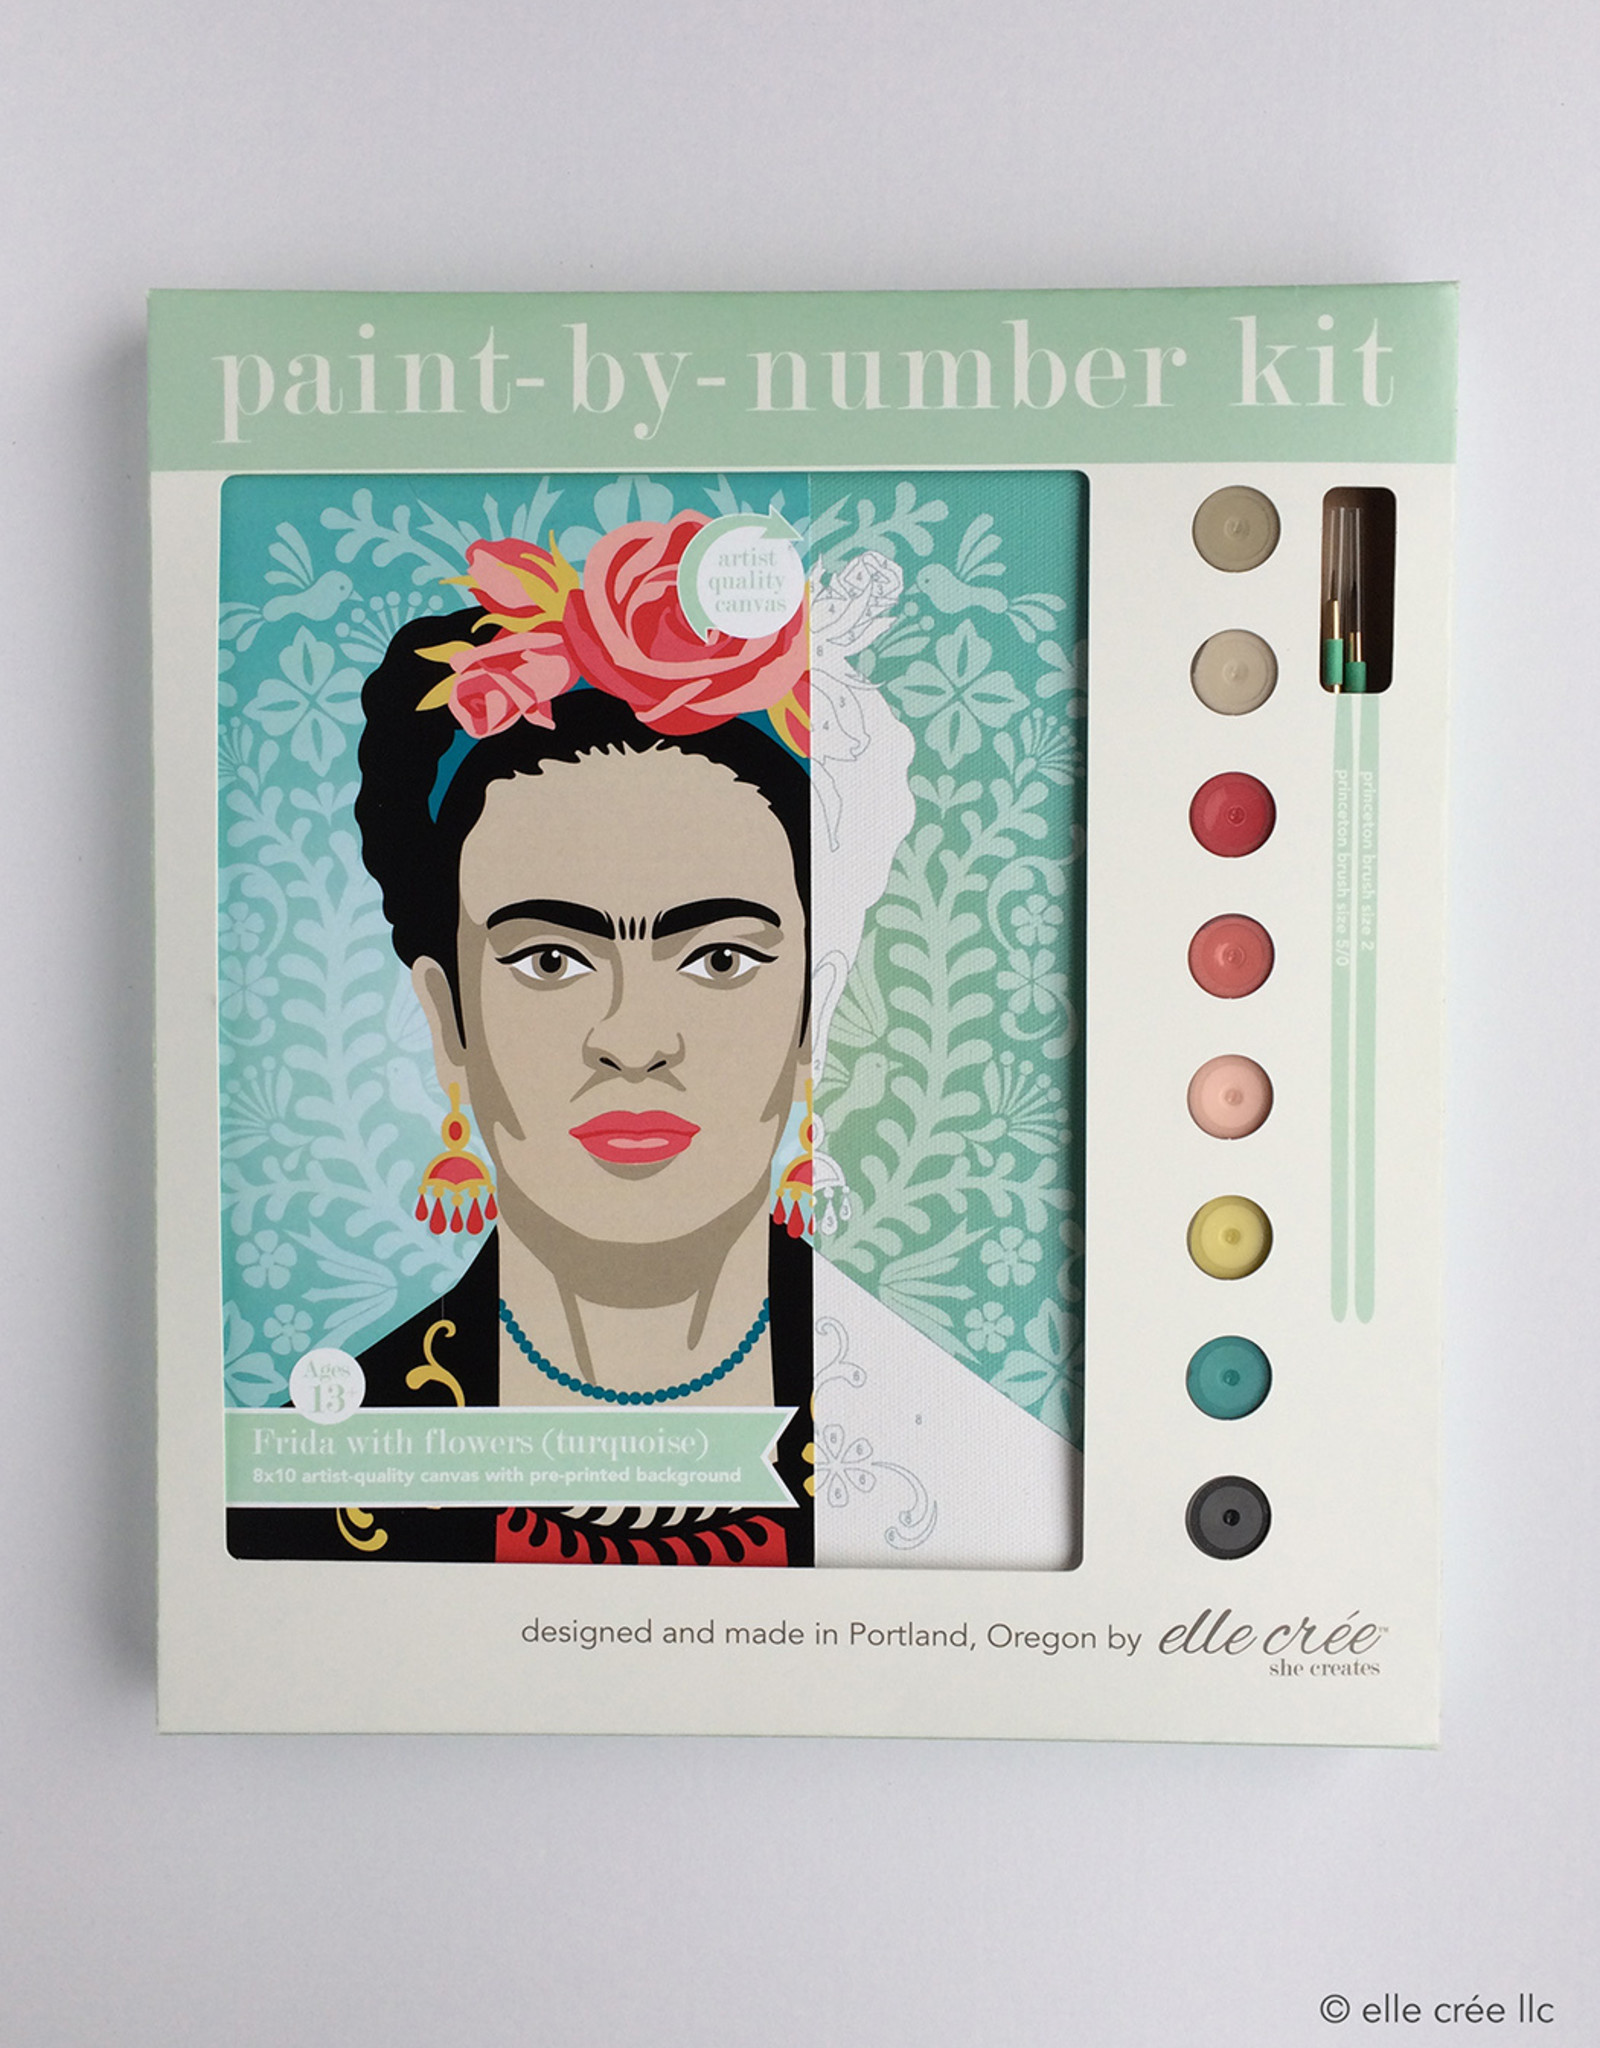 Elle Cree More Paint by Number Kits by Elle Cree